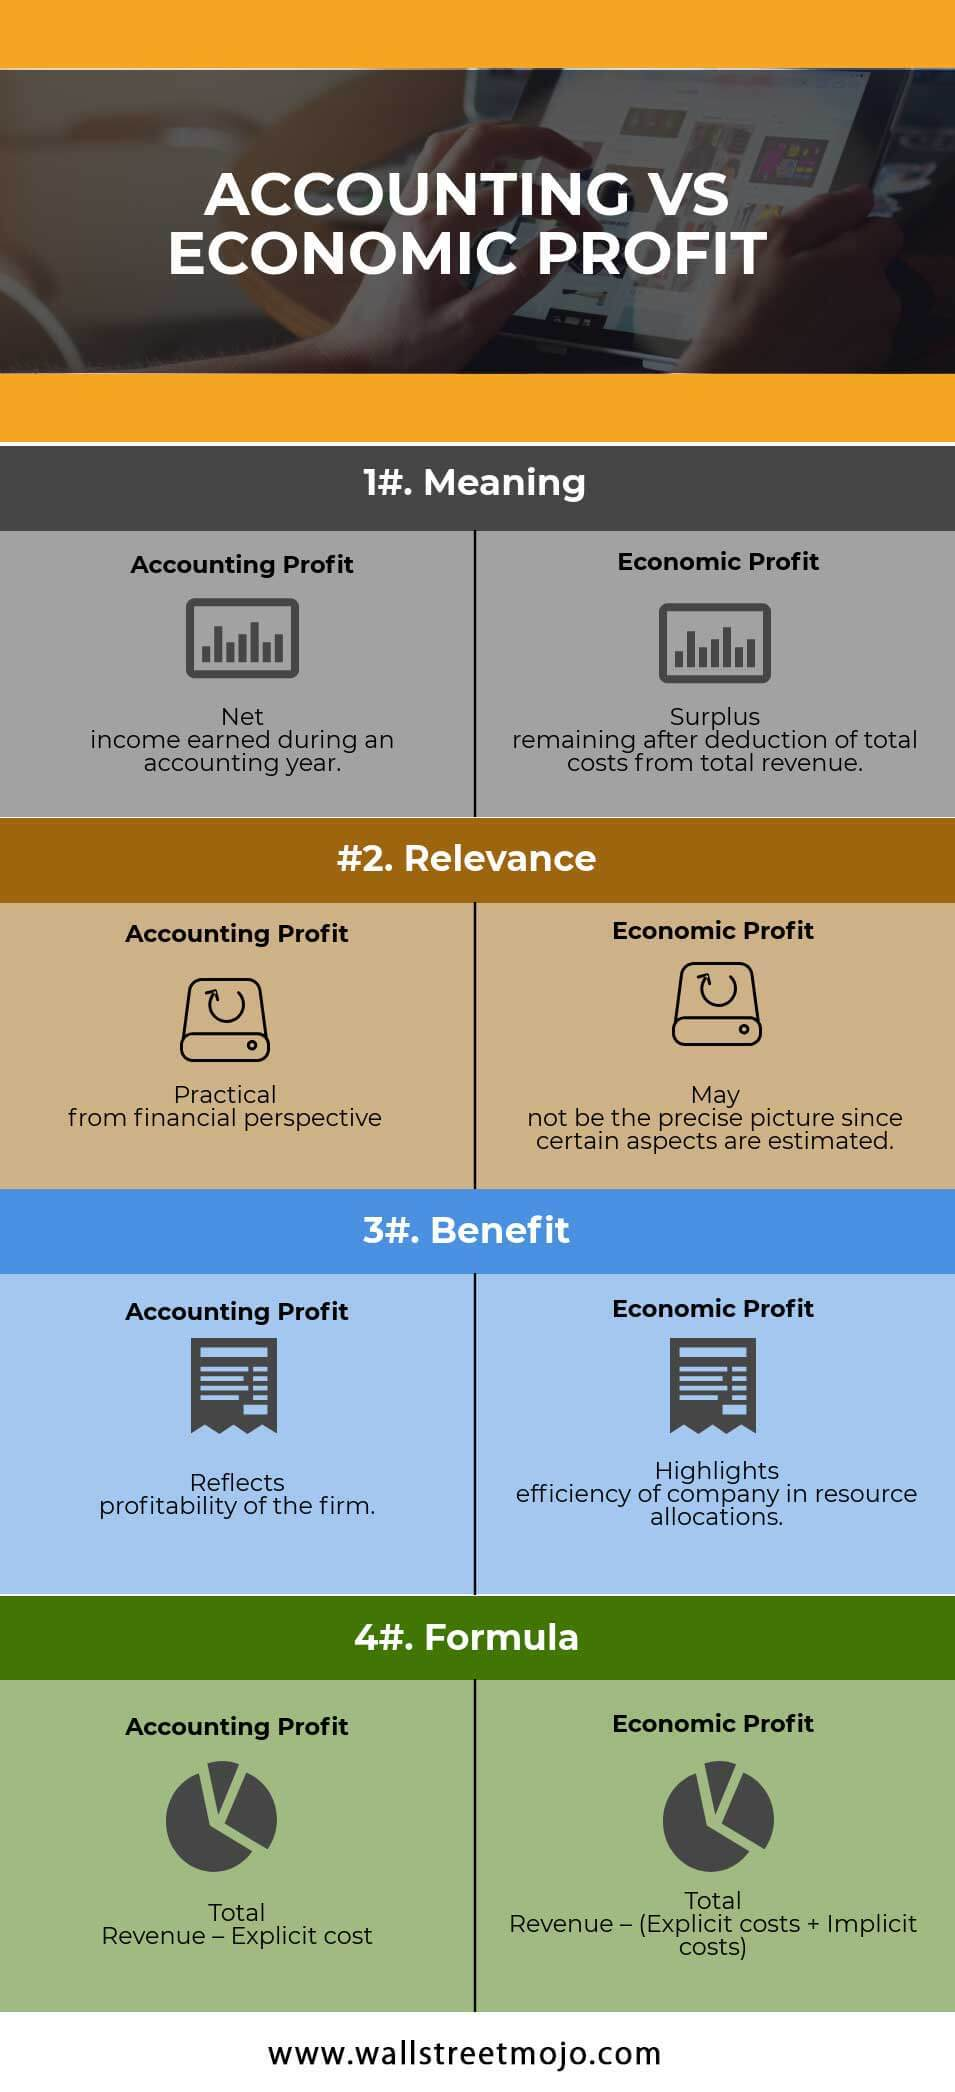 ACCOUNTING VS ECONOMIC PROFIT